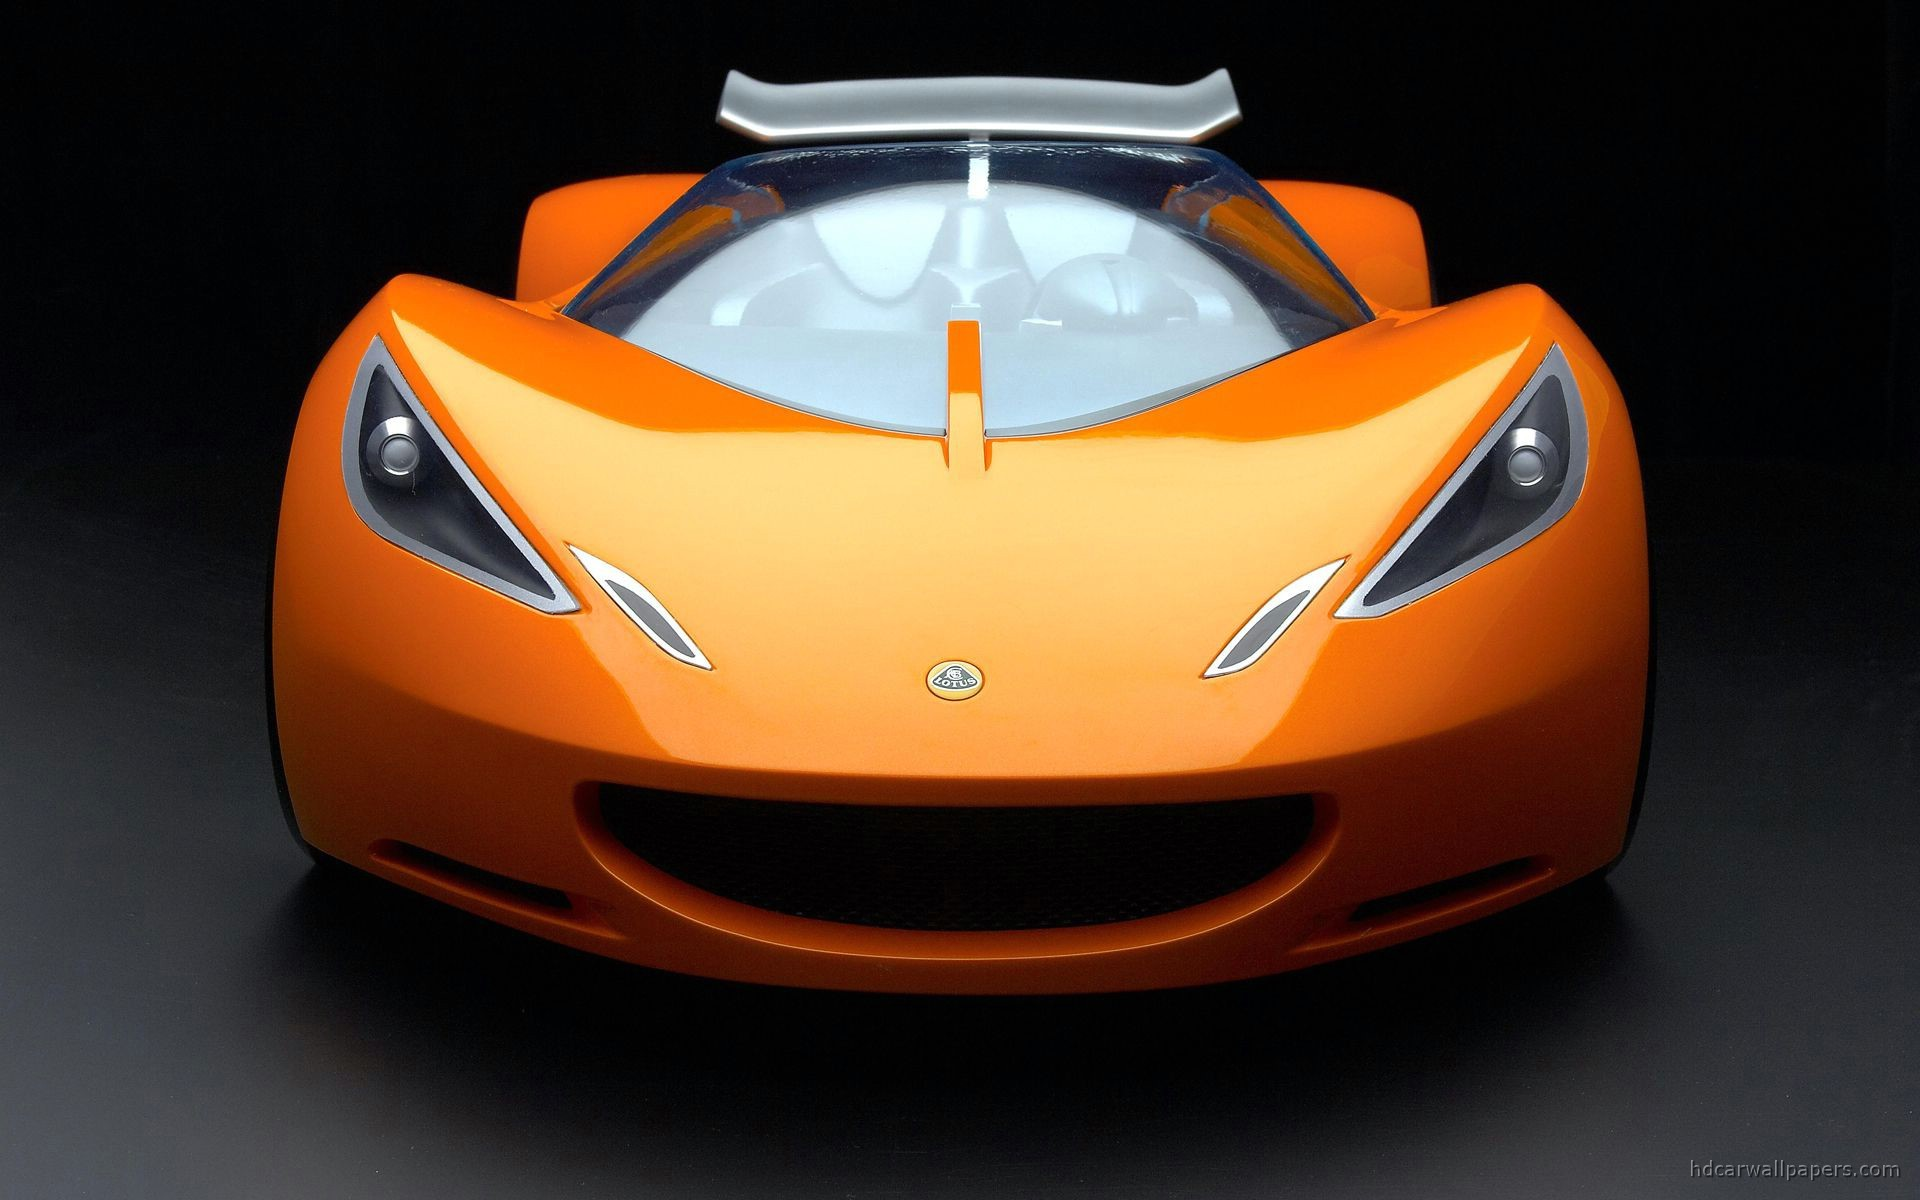 http://www.hdcarwallpapers.com/download/lotus_hot_wheels_concept_3-1920x1200.jpg